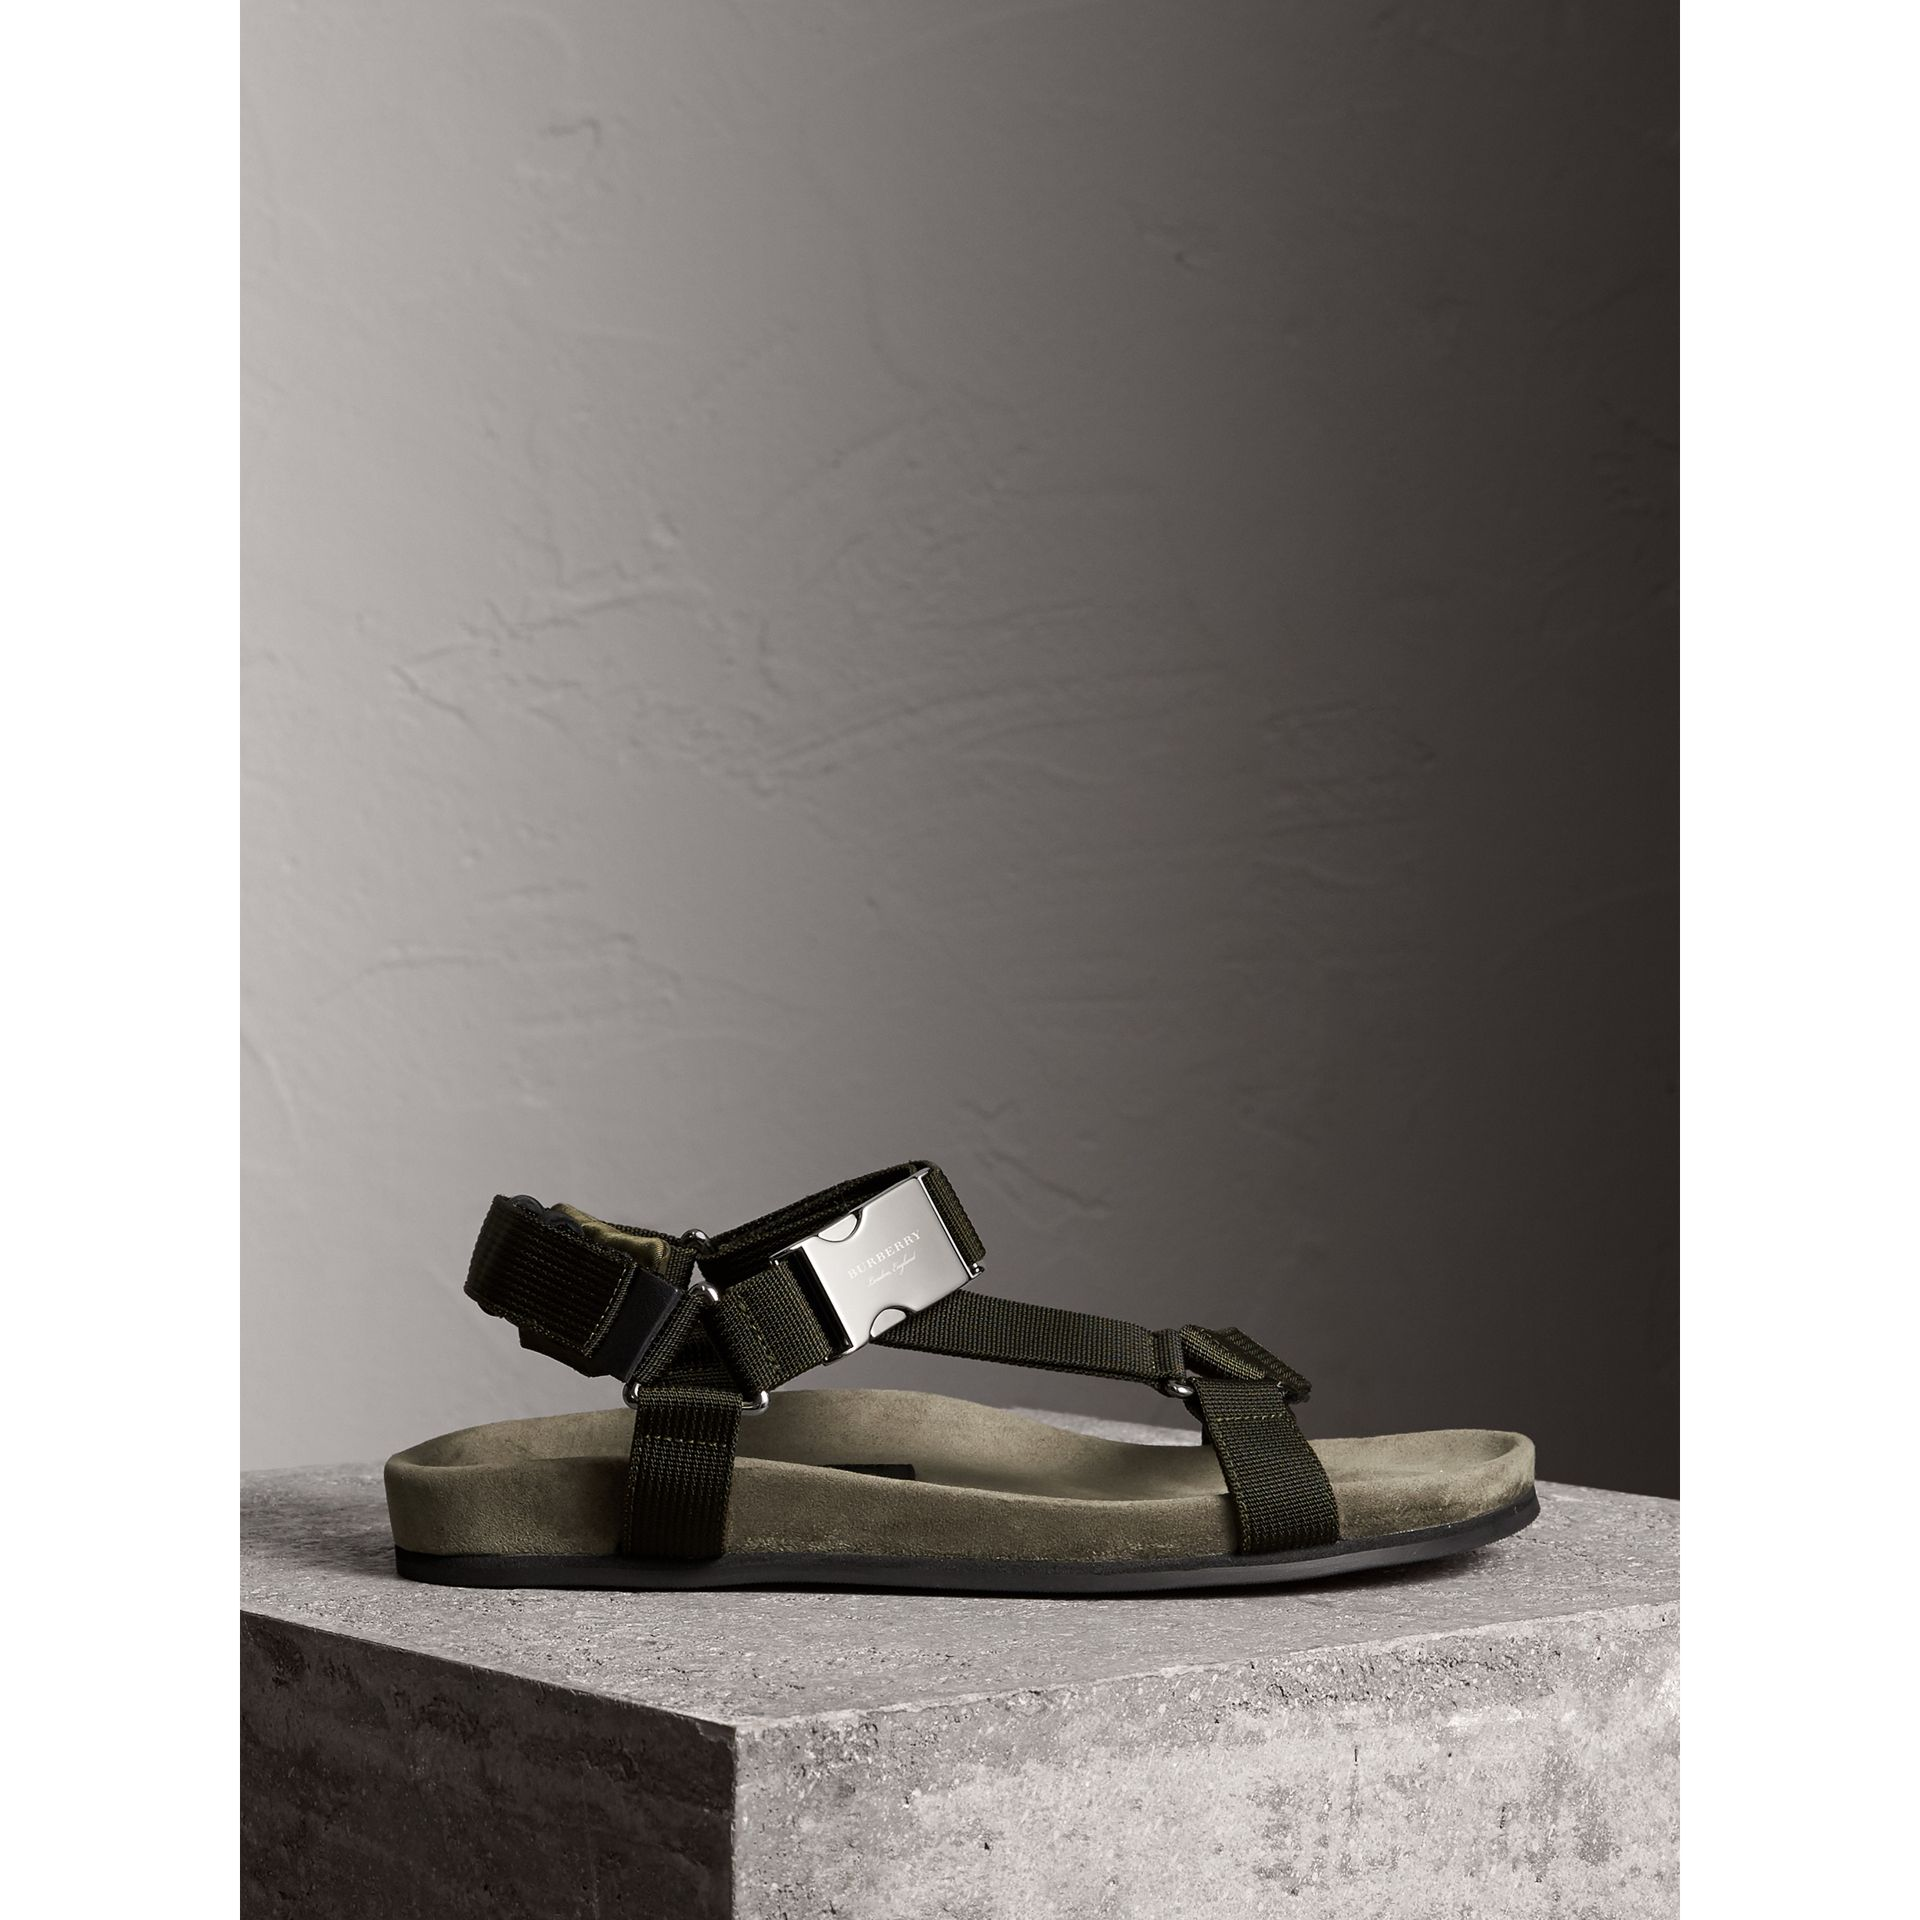 Three-point Strap Ripstop Sandals in Khaki - Men | Burberry Canada - gallery image 5